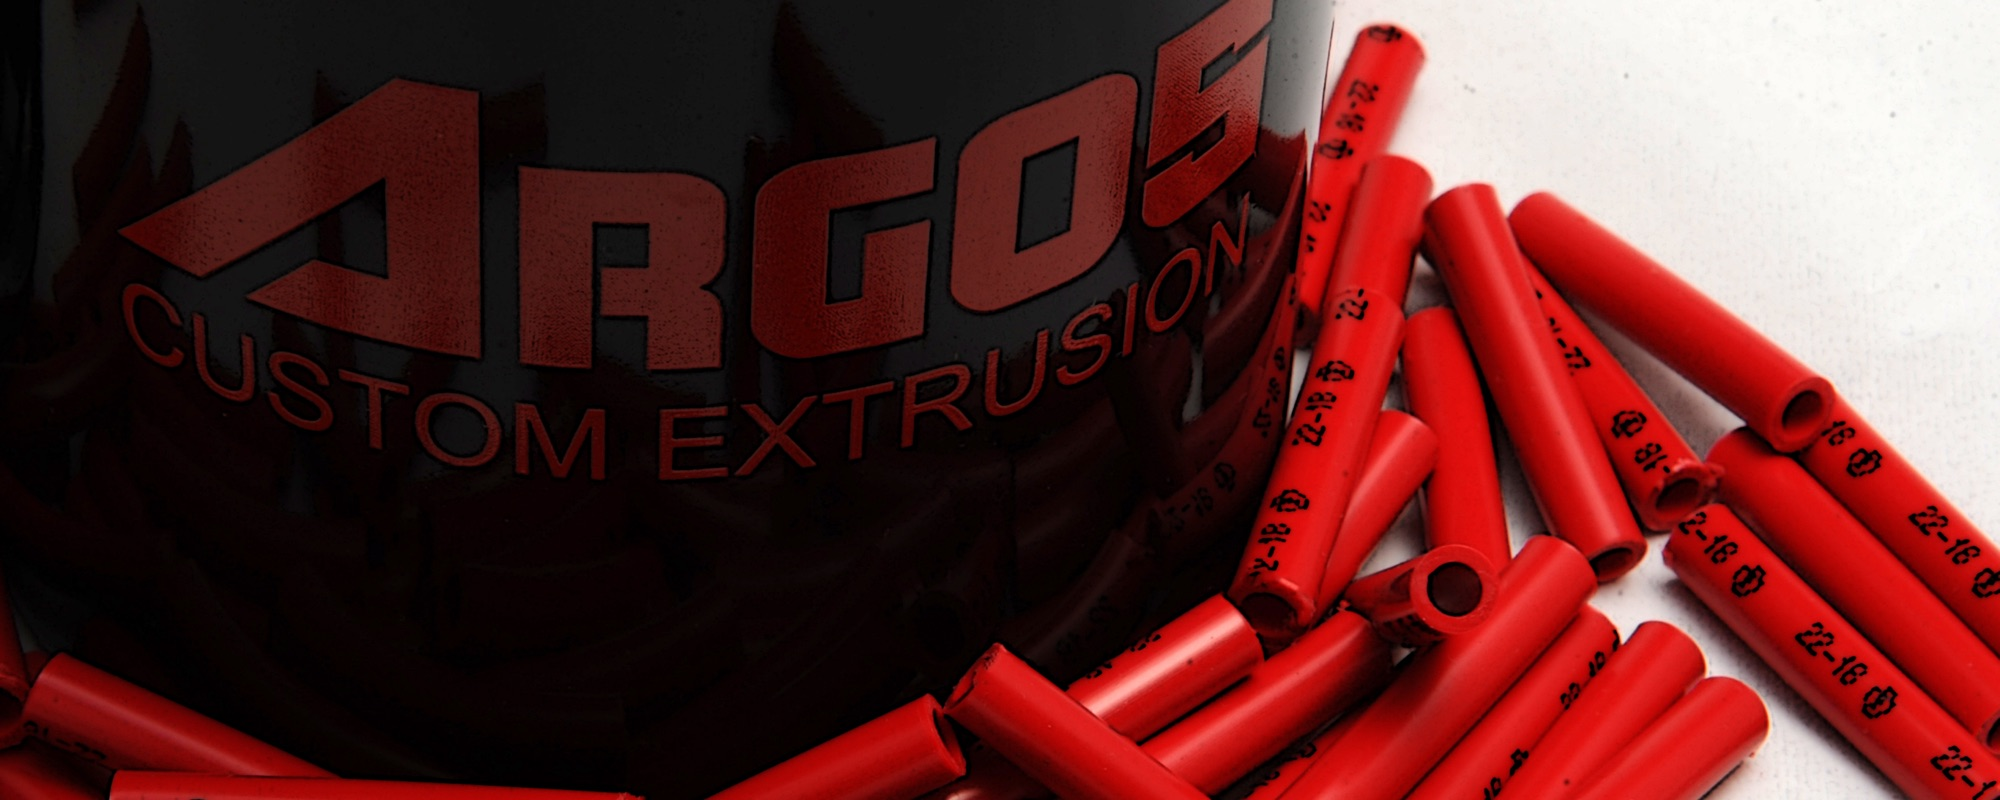 Argos Custom Extrusion